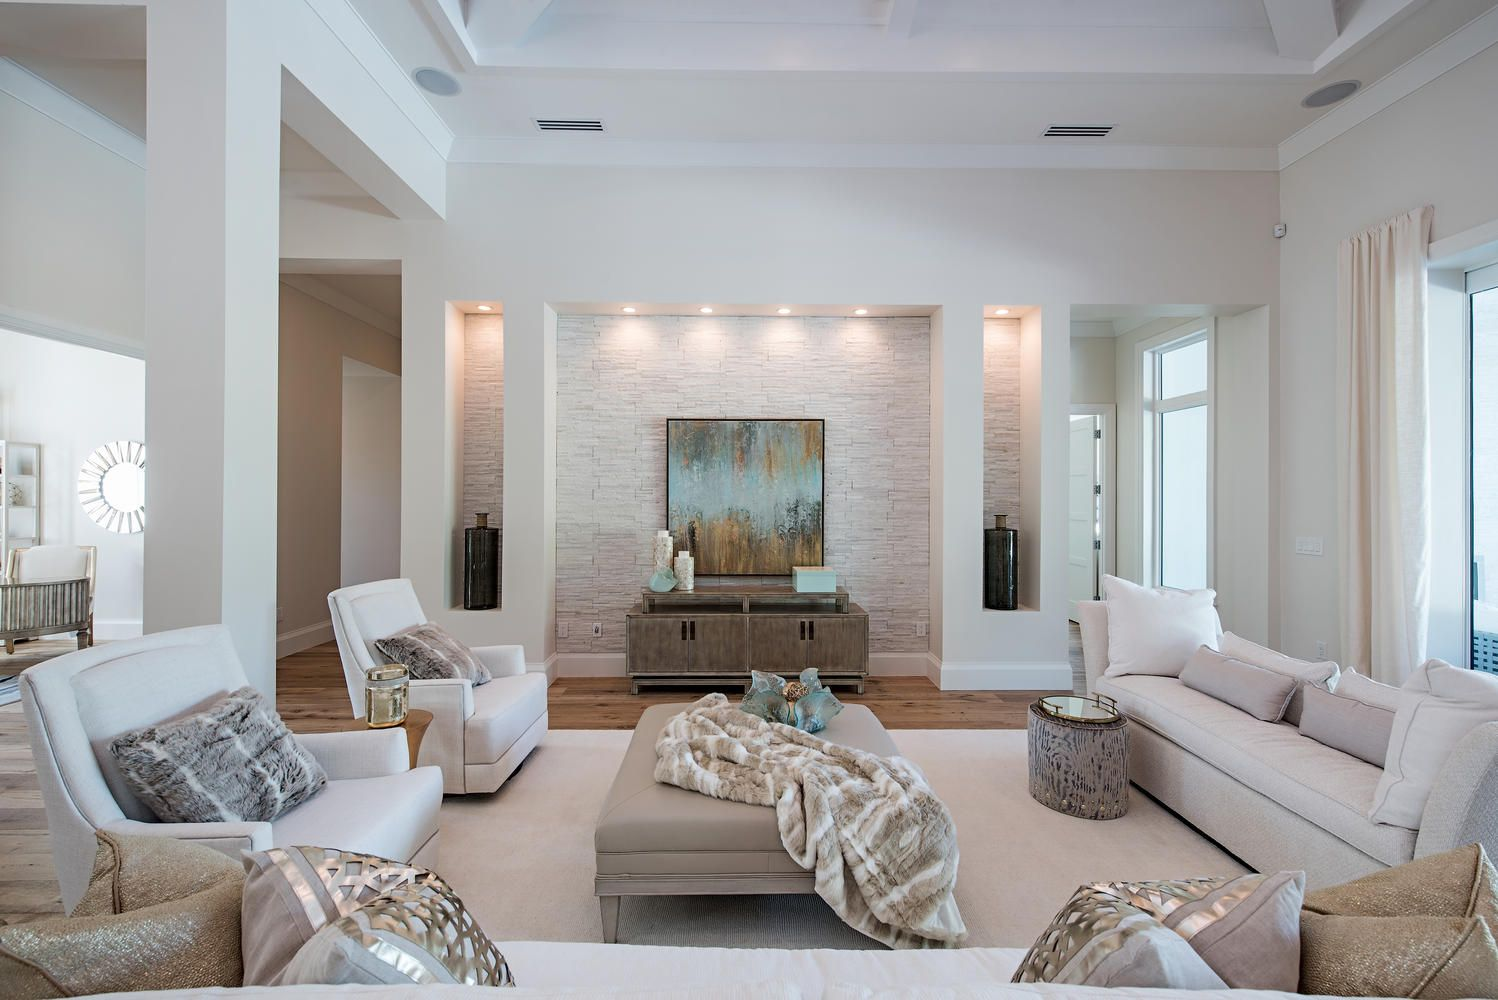 Exceptionnel Berson Model The Moorings Naples Fl With Modern Furniture Naples Fl.